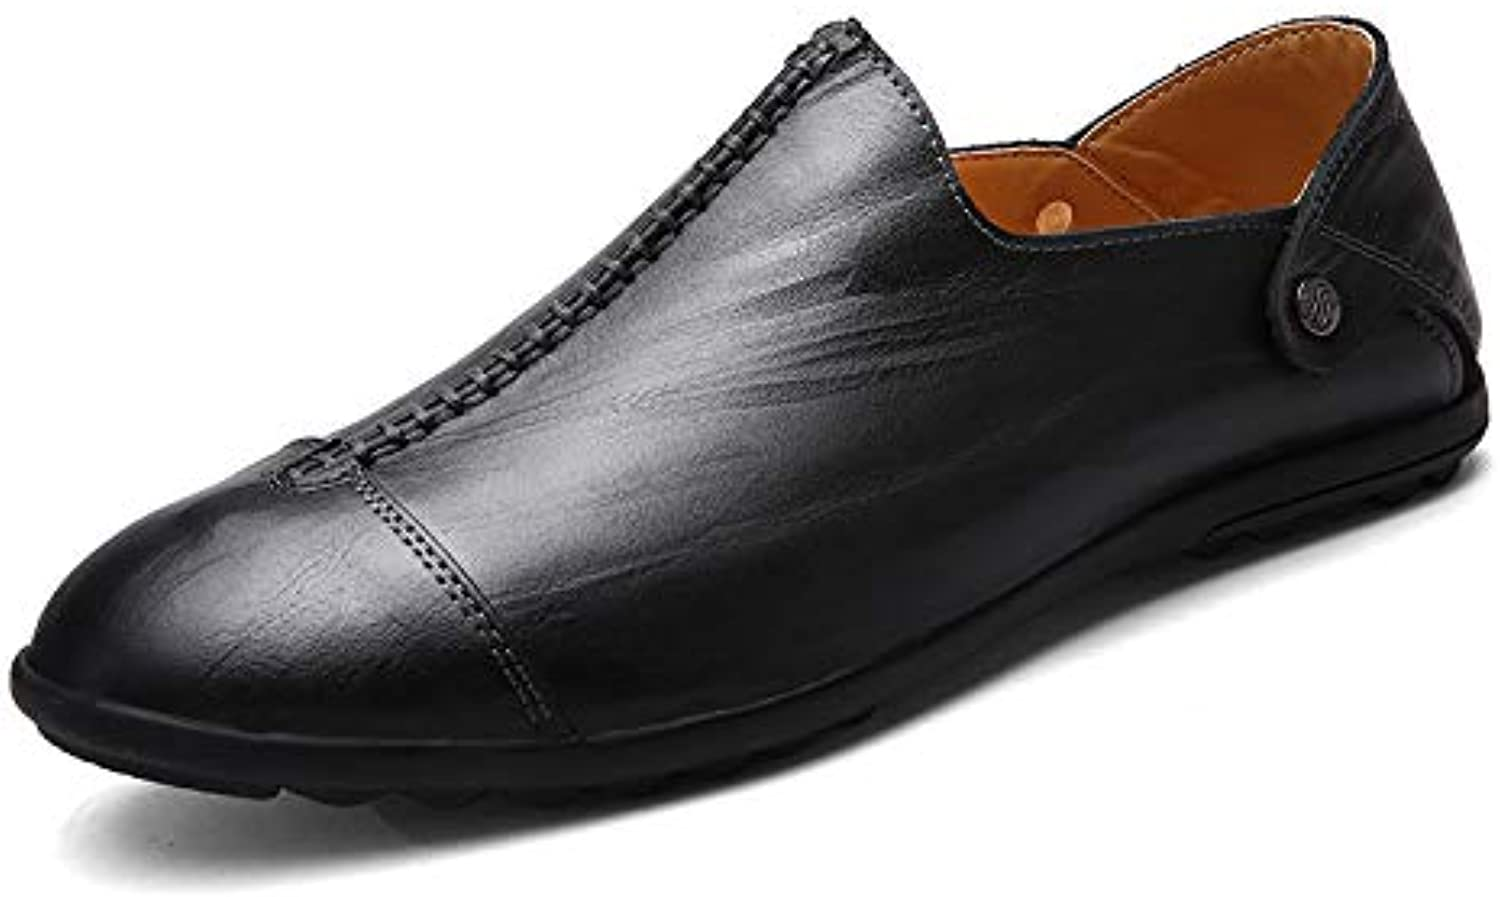 LOVDRAM Men's scarpe New Leather Fashion Comfortable Men's Casual Casual Casual Business Breathable Low To Help Set Foot Men's... | Primo gruppo di clienti